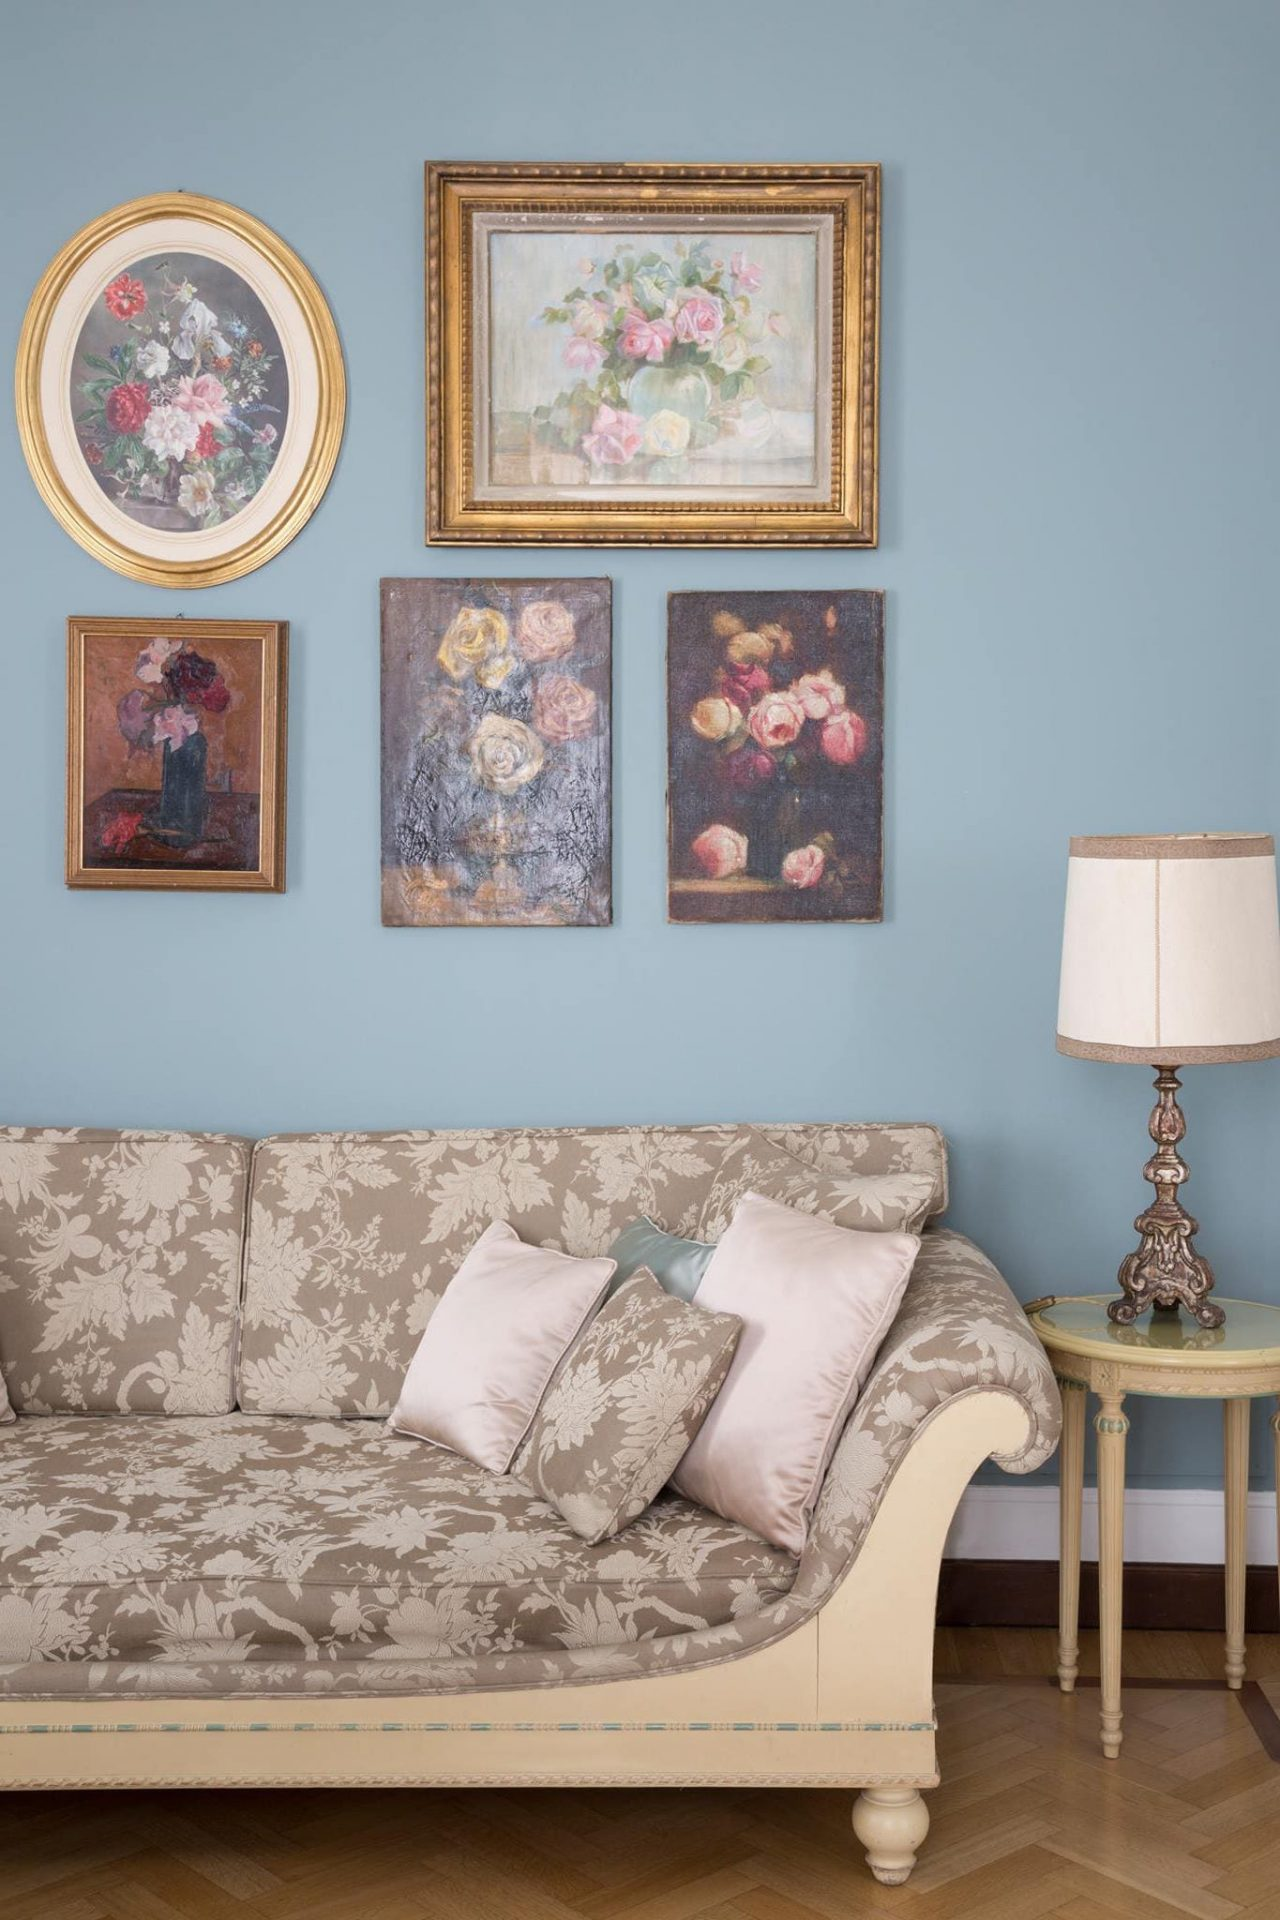 light blue wall with five framed art pieces, a lamp on a table and part of a couch with three pillows